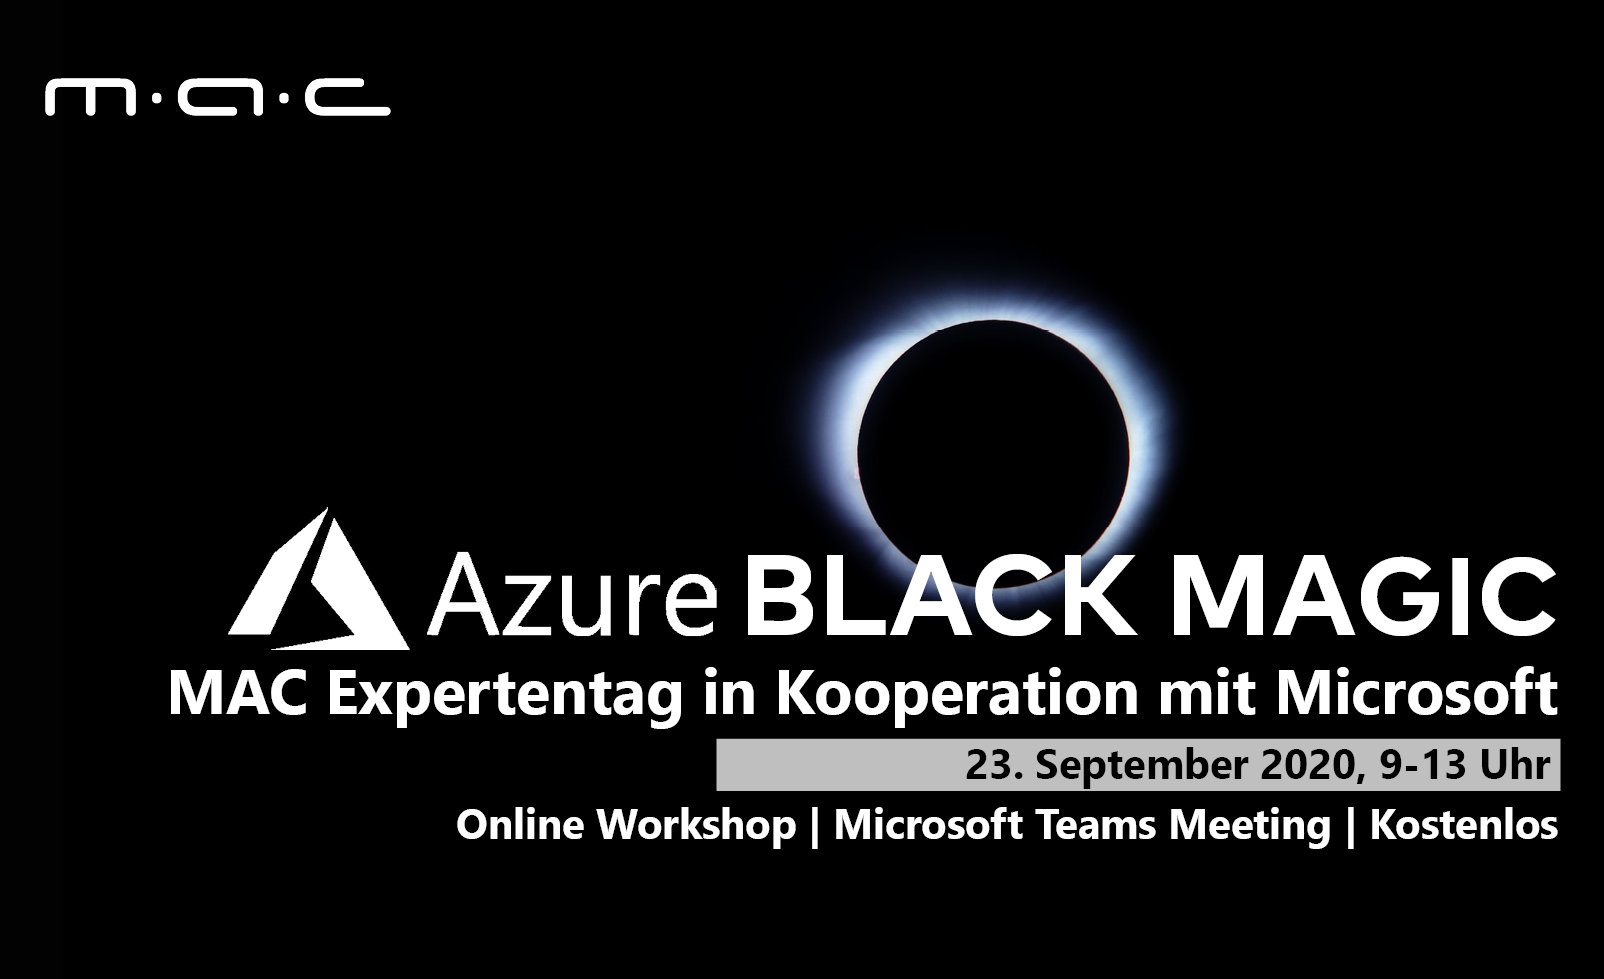 Azure Black Magic Titelbild